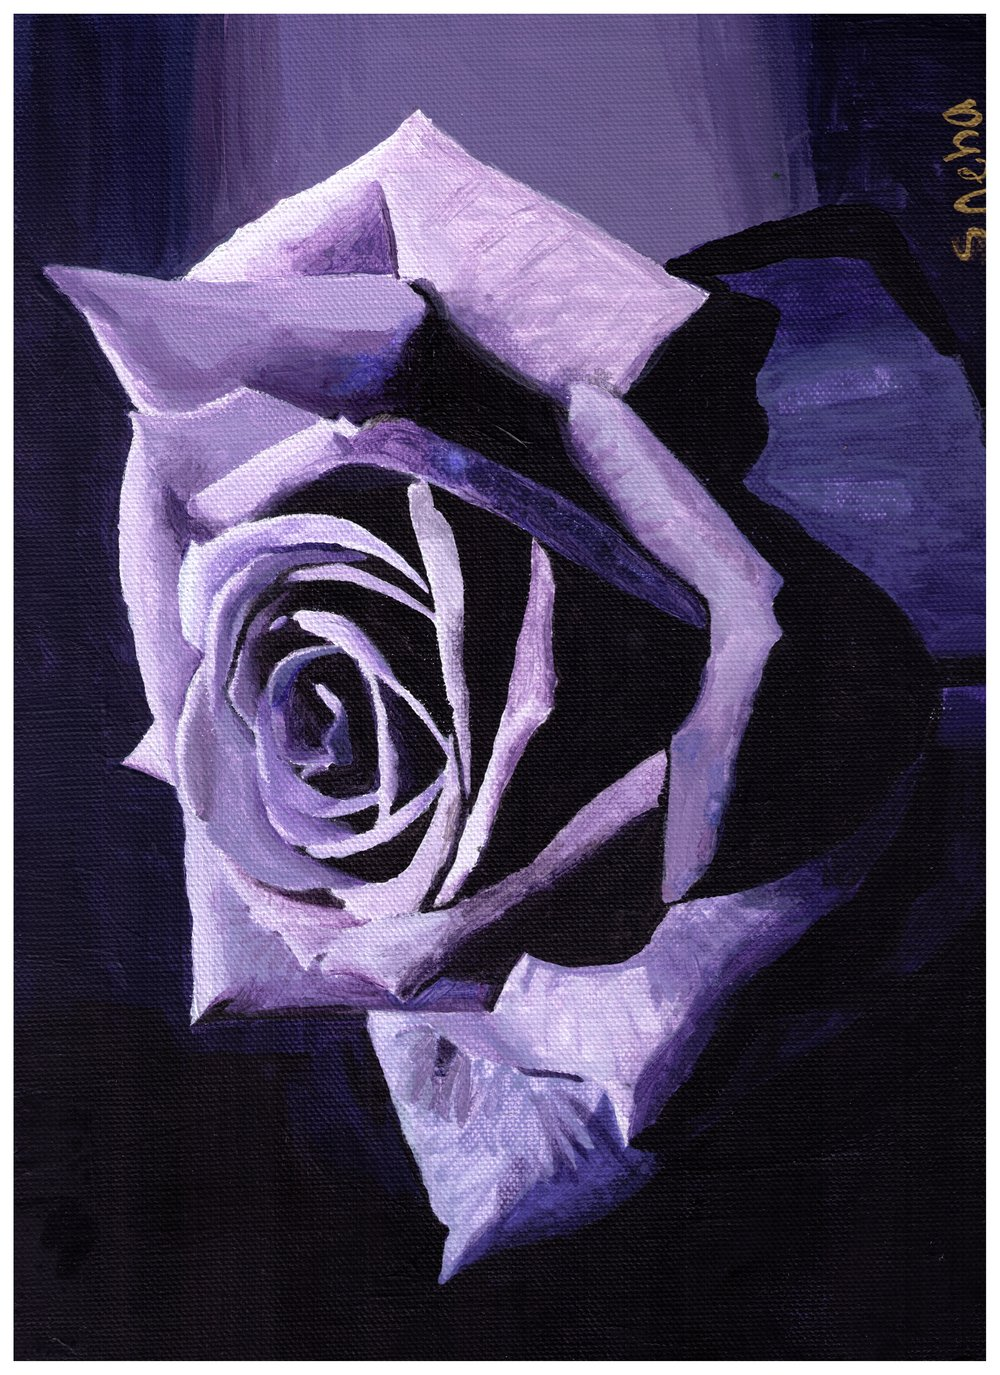 Sneha_purple-Rose.jpg